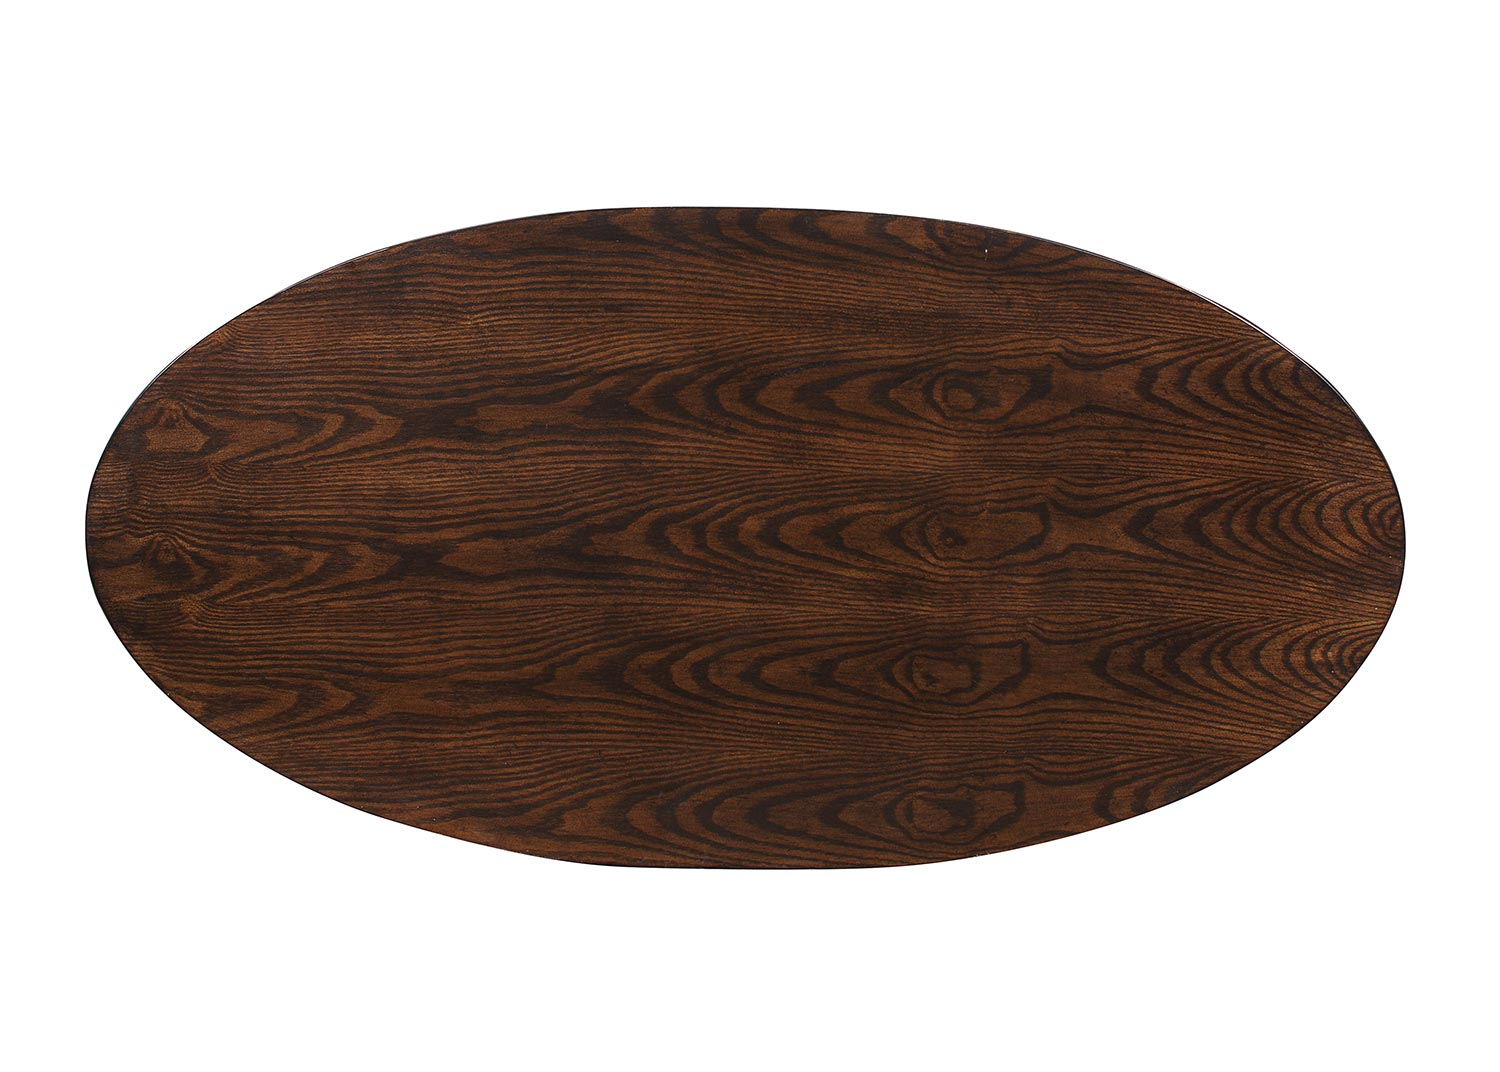 Homelegance Lhasa Cocktail/Coffee Table - Warm Walnut